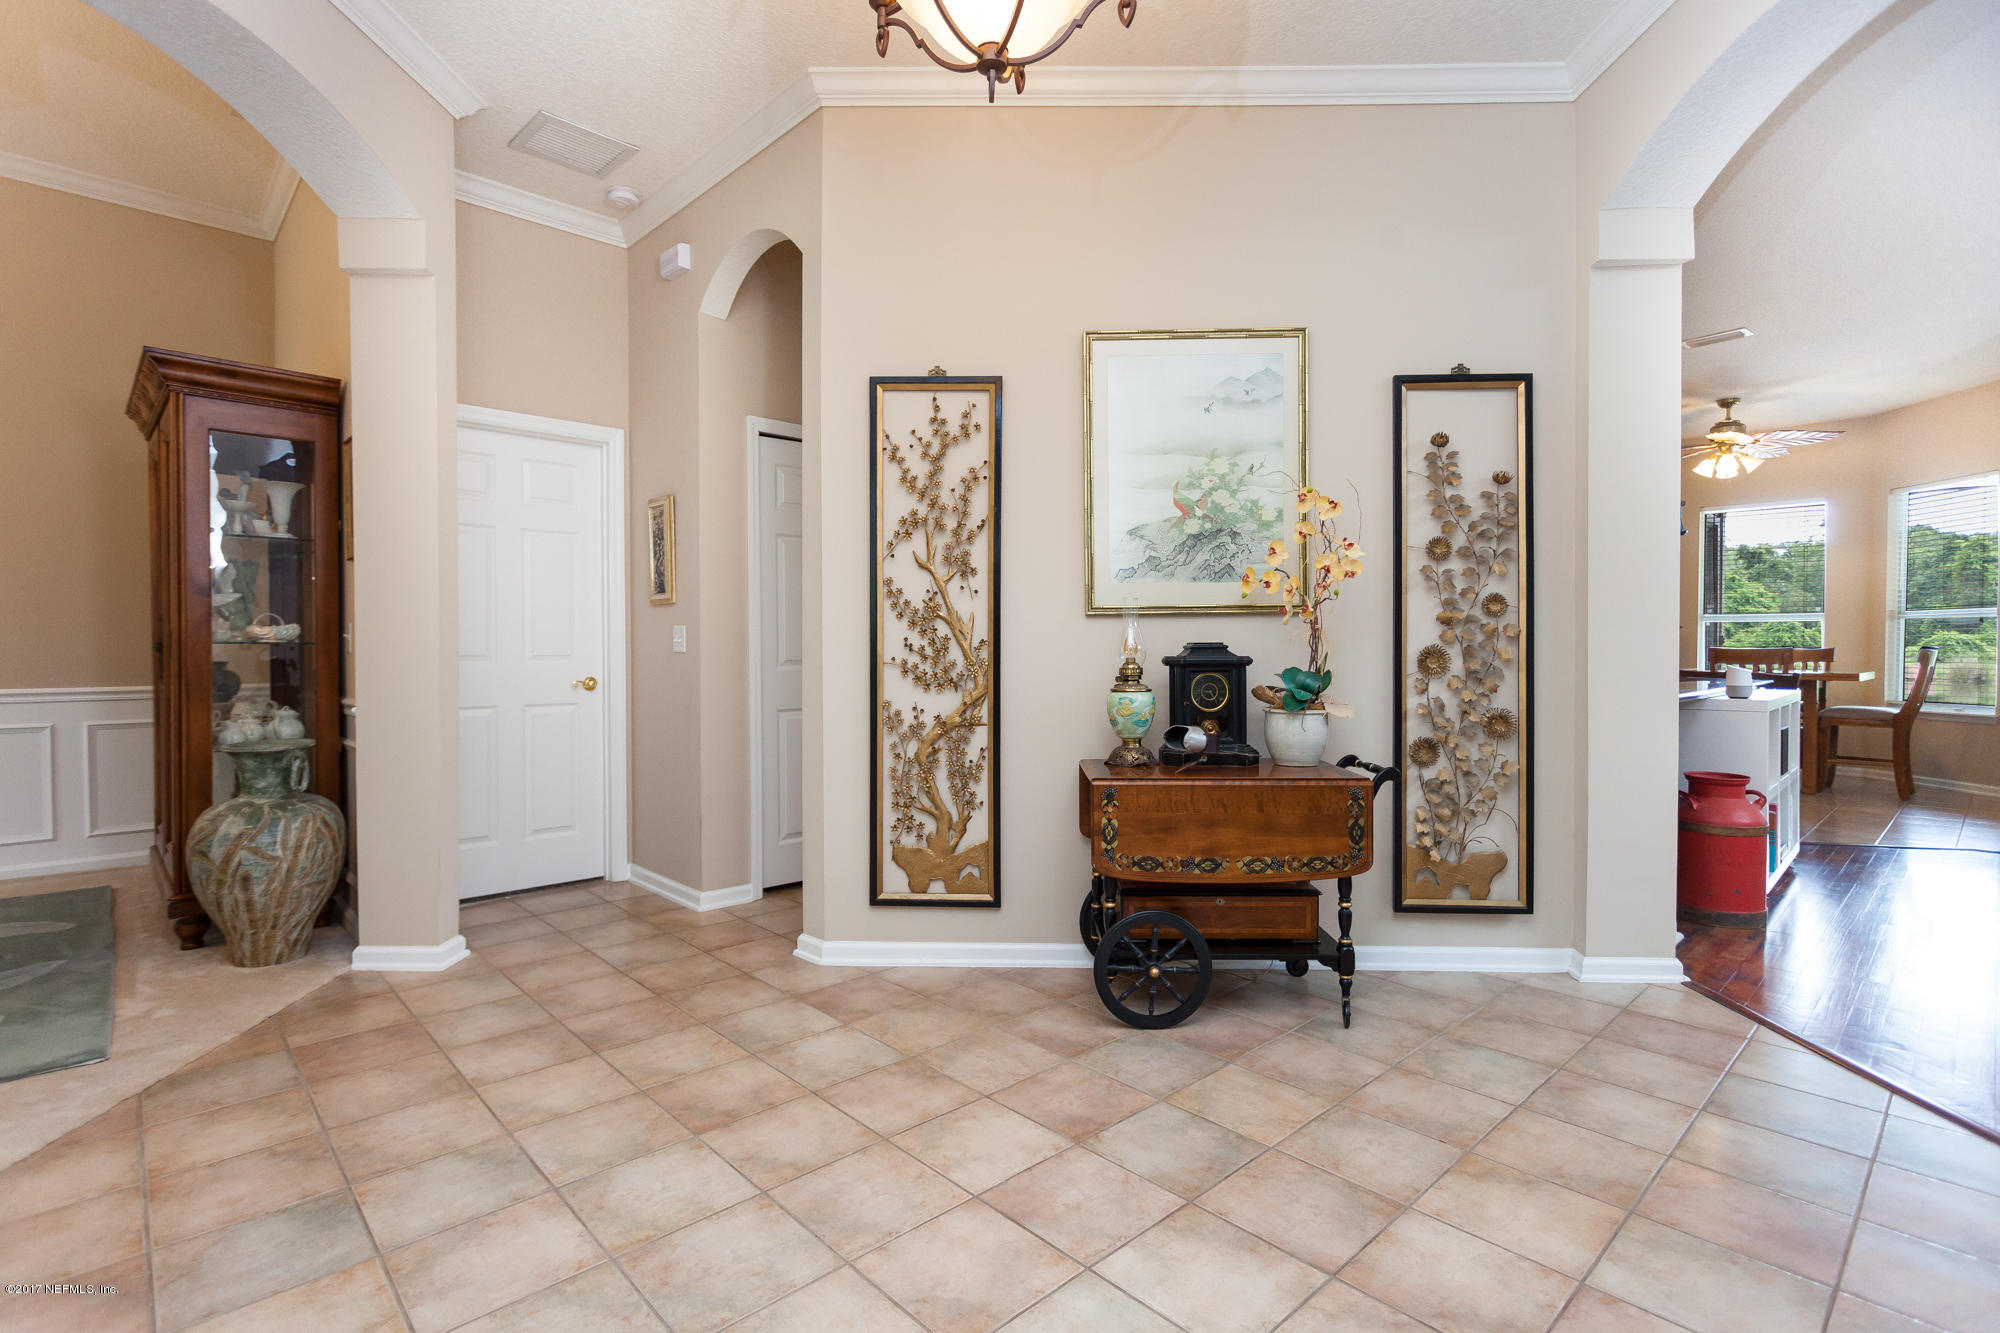 510 TRAILS EDGE, ST AUGUSTINE, FLORIDA 32095, 4 Bedrooms Bedrooms, ,3 BathroomsBathrooms,Residential - single family,For sale,TRAILS EDGE,986216